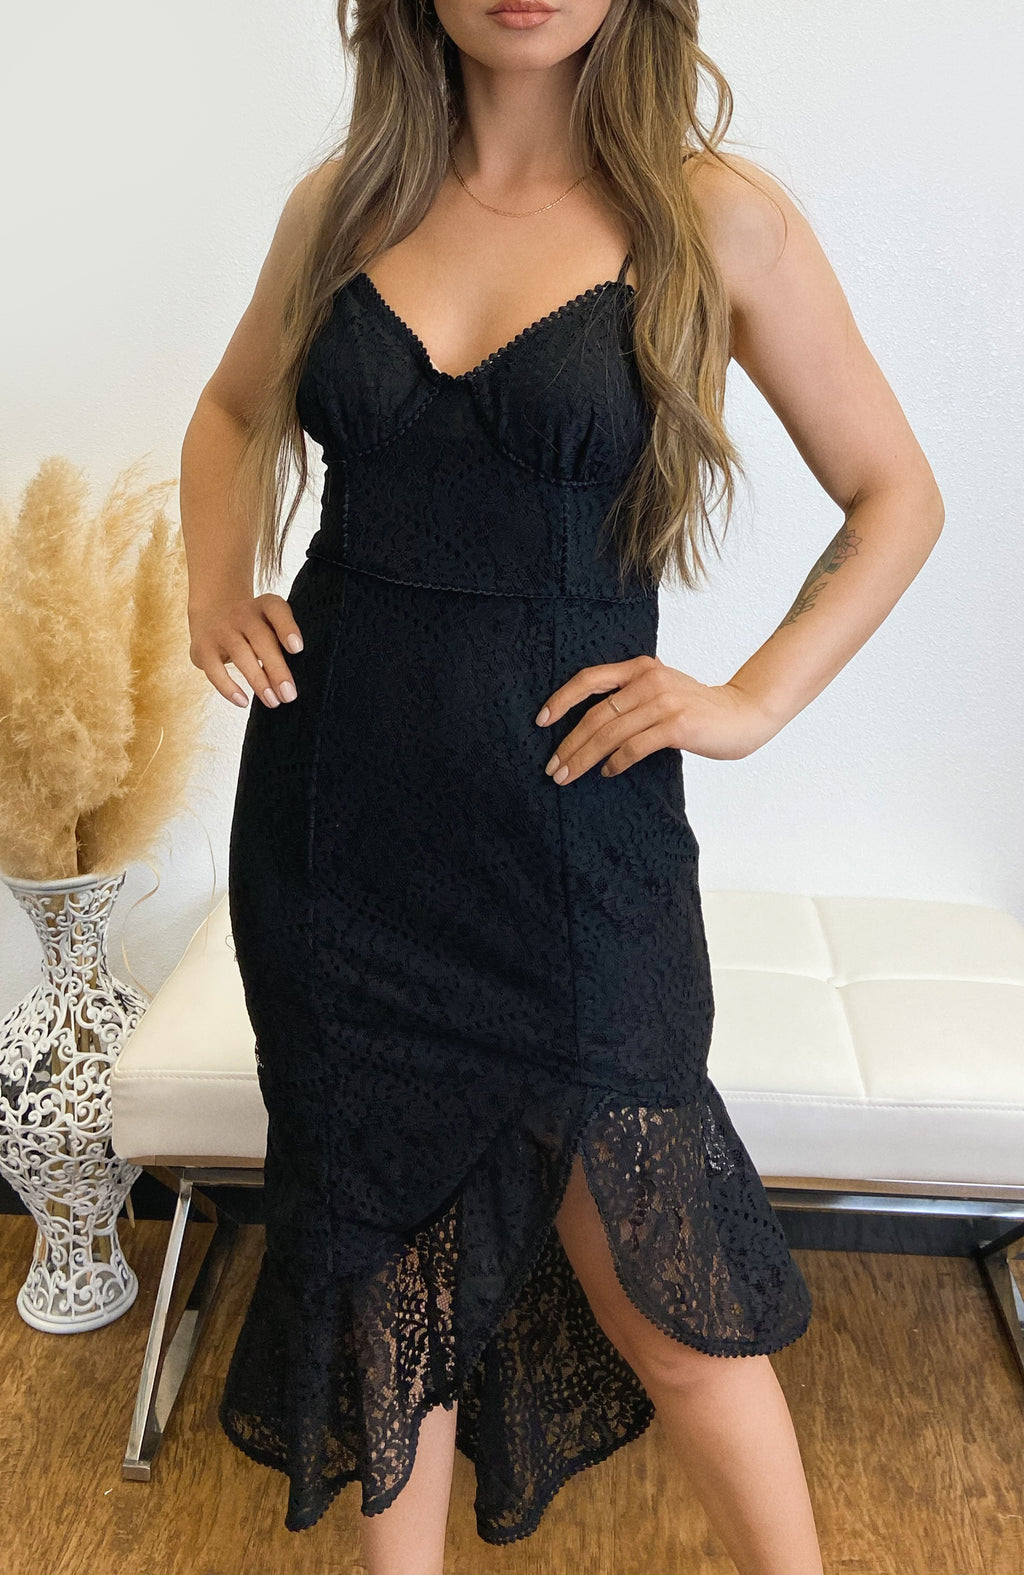 Vaycay Dreams - Black Dress